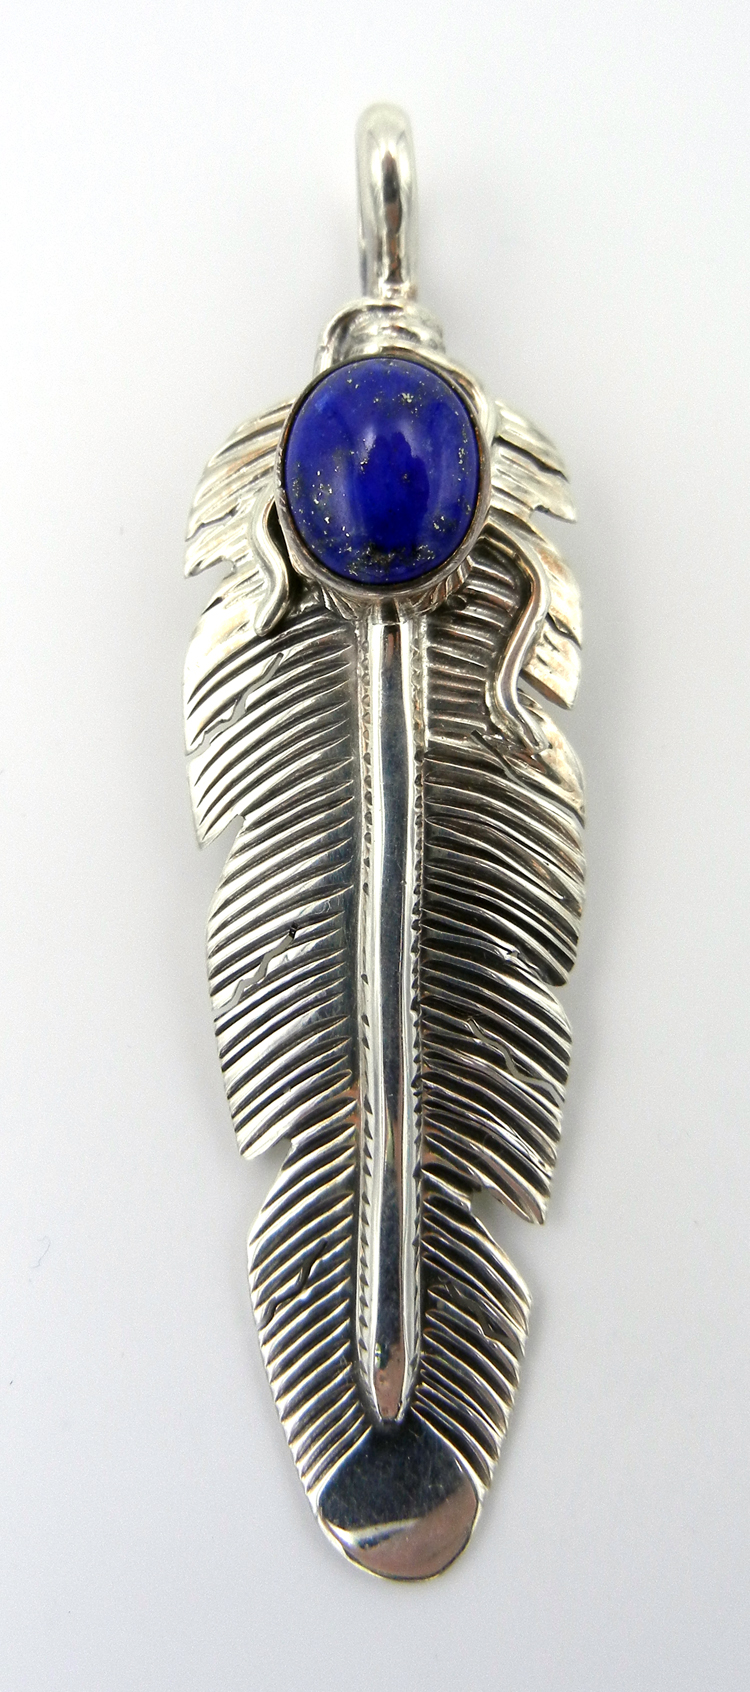 Navajo lapis and sterling silver feather pendant by June Defauito